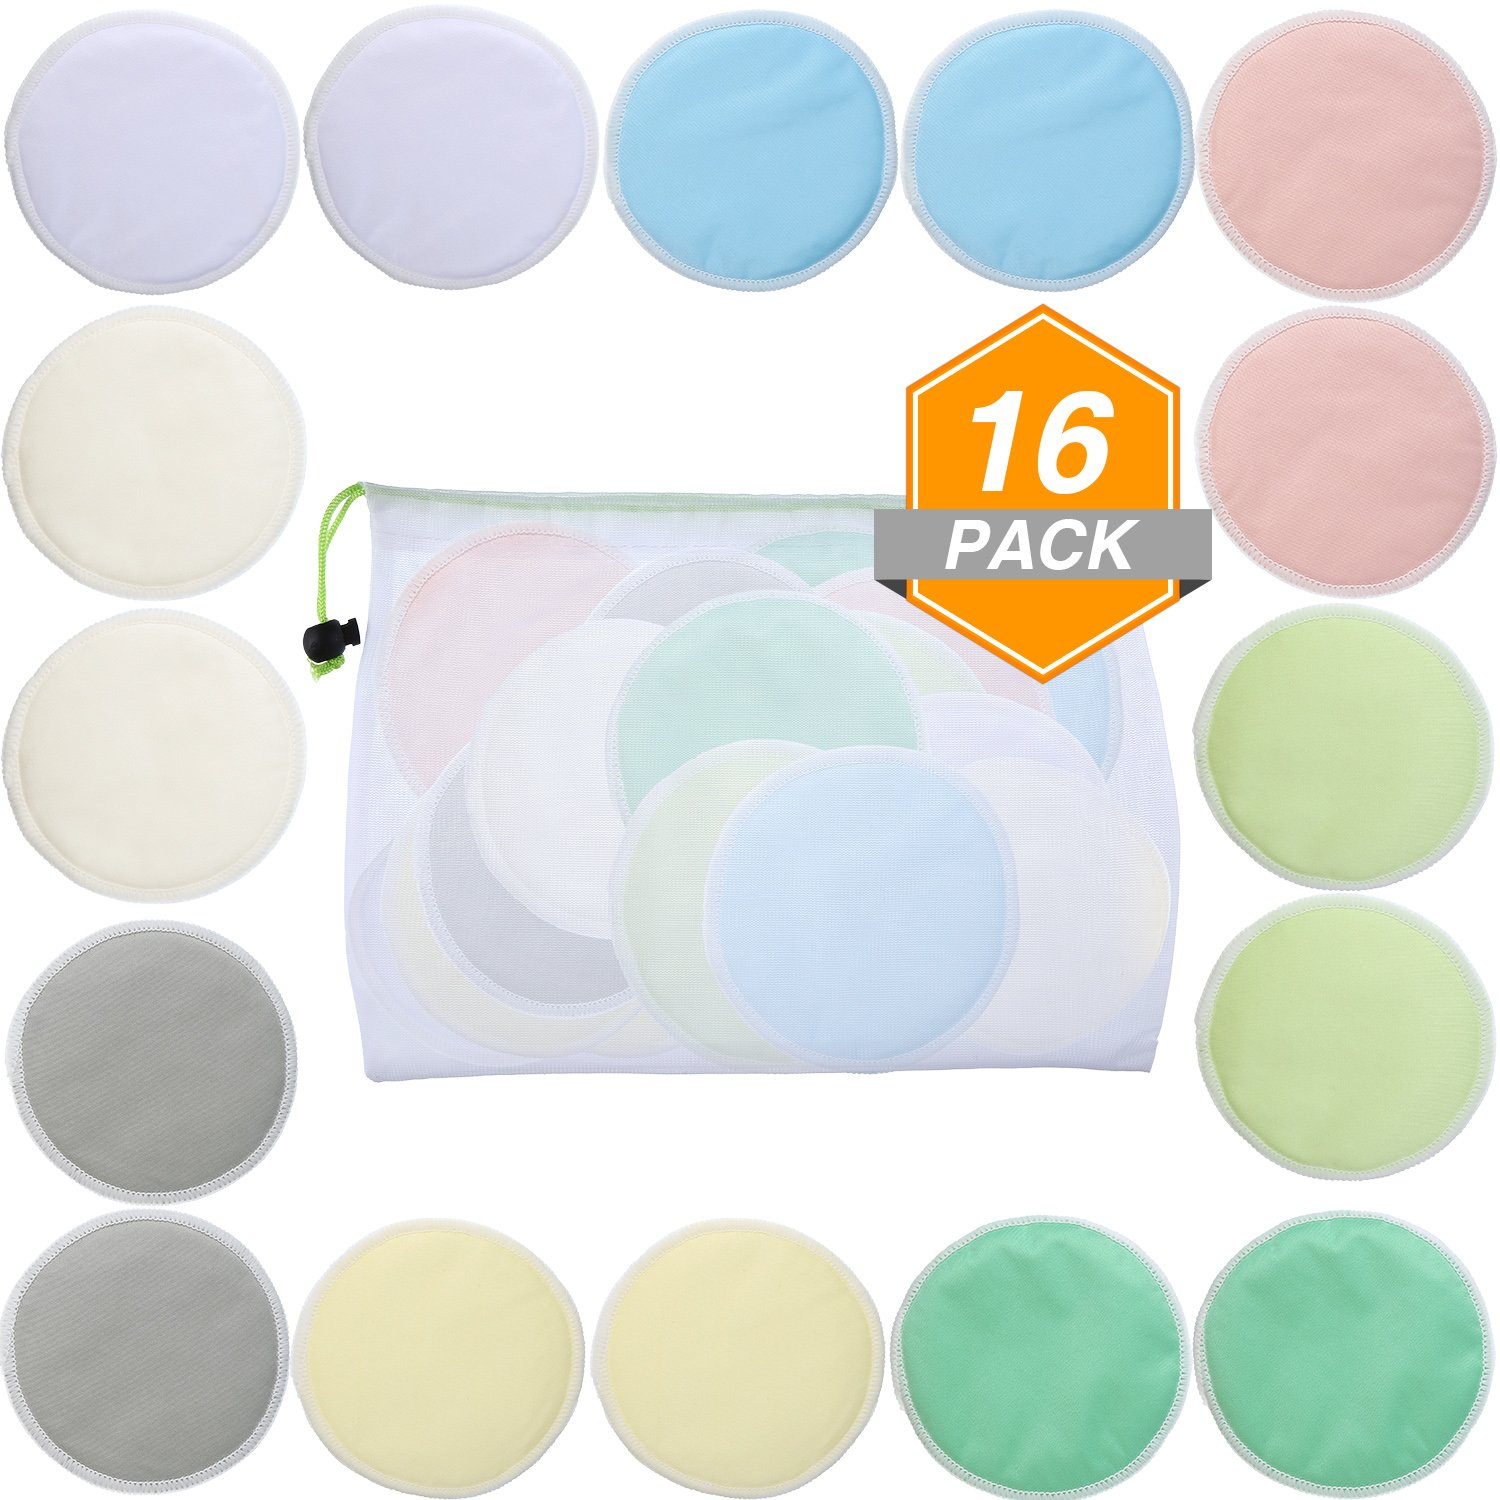 Gejoy 16 Pieces Bamboo Makeup Remover Pads Soft Face Clean Pads Facial Clean Skin Care Wash Cloth Pad with Mesh Bag, Assorted Colors